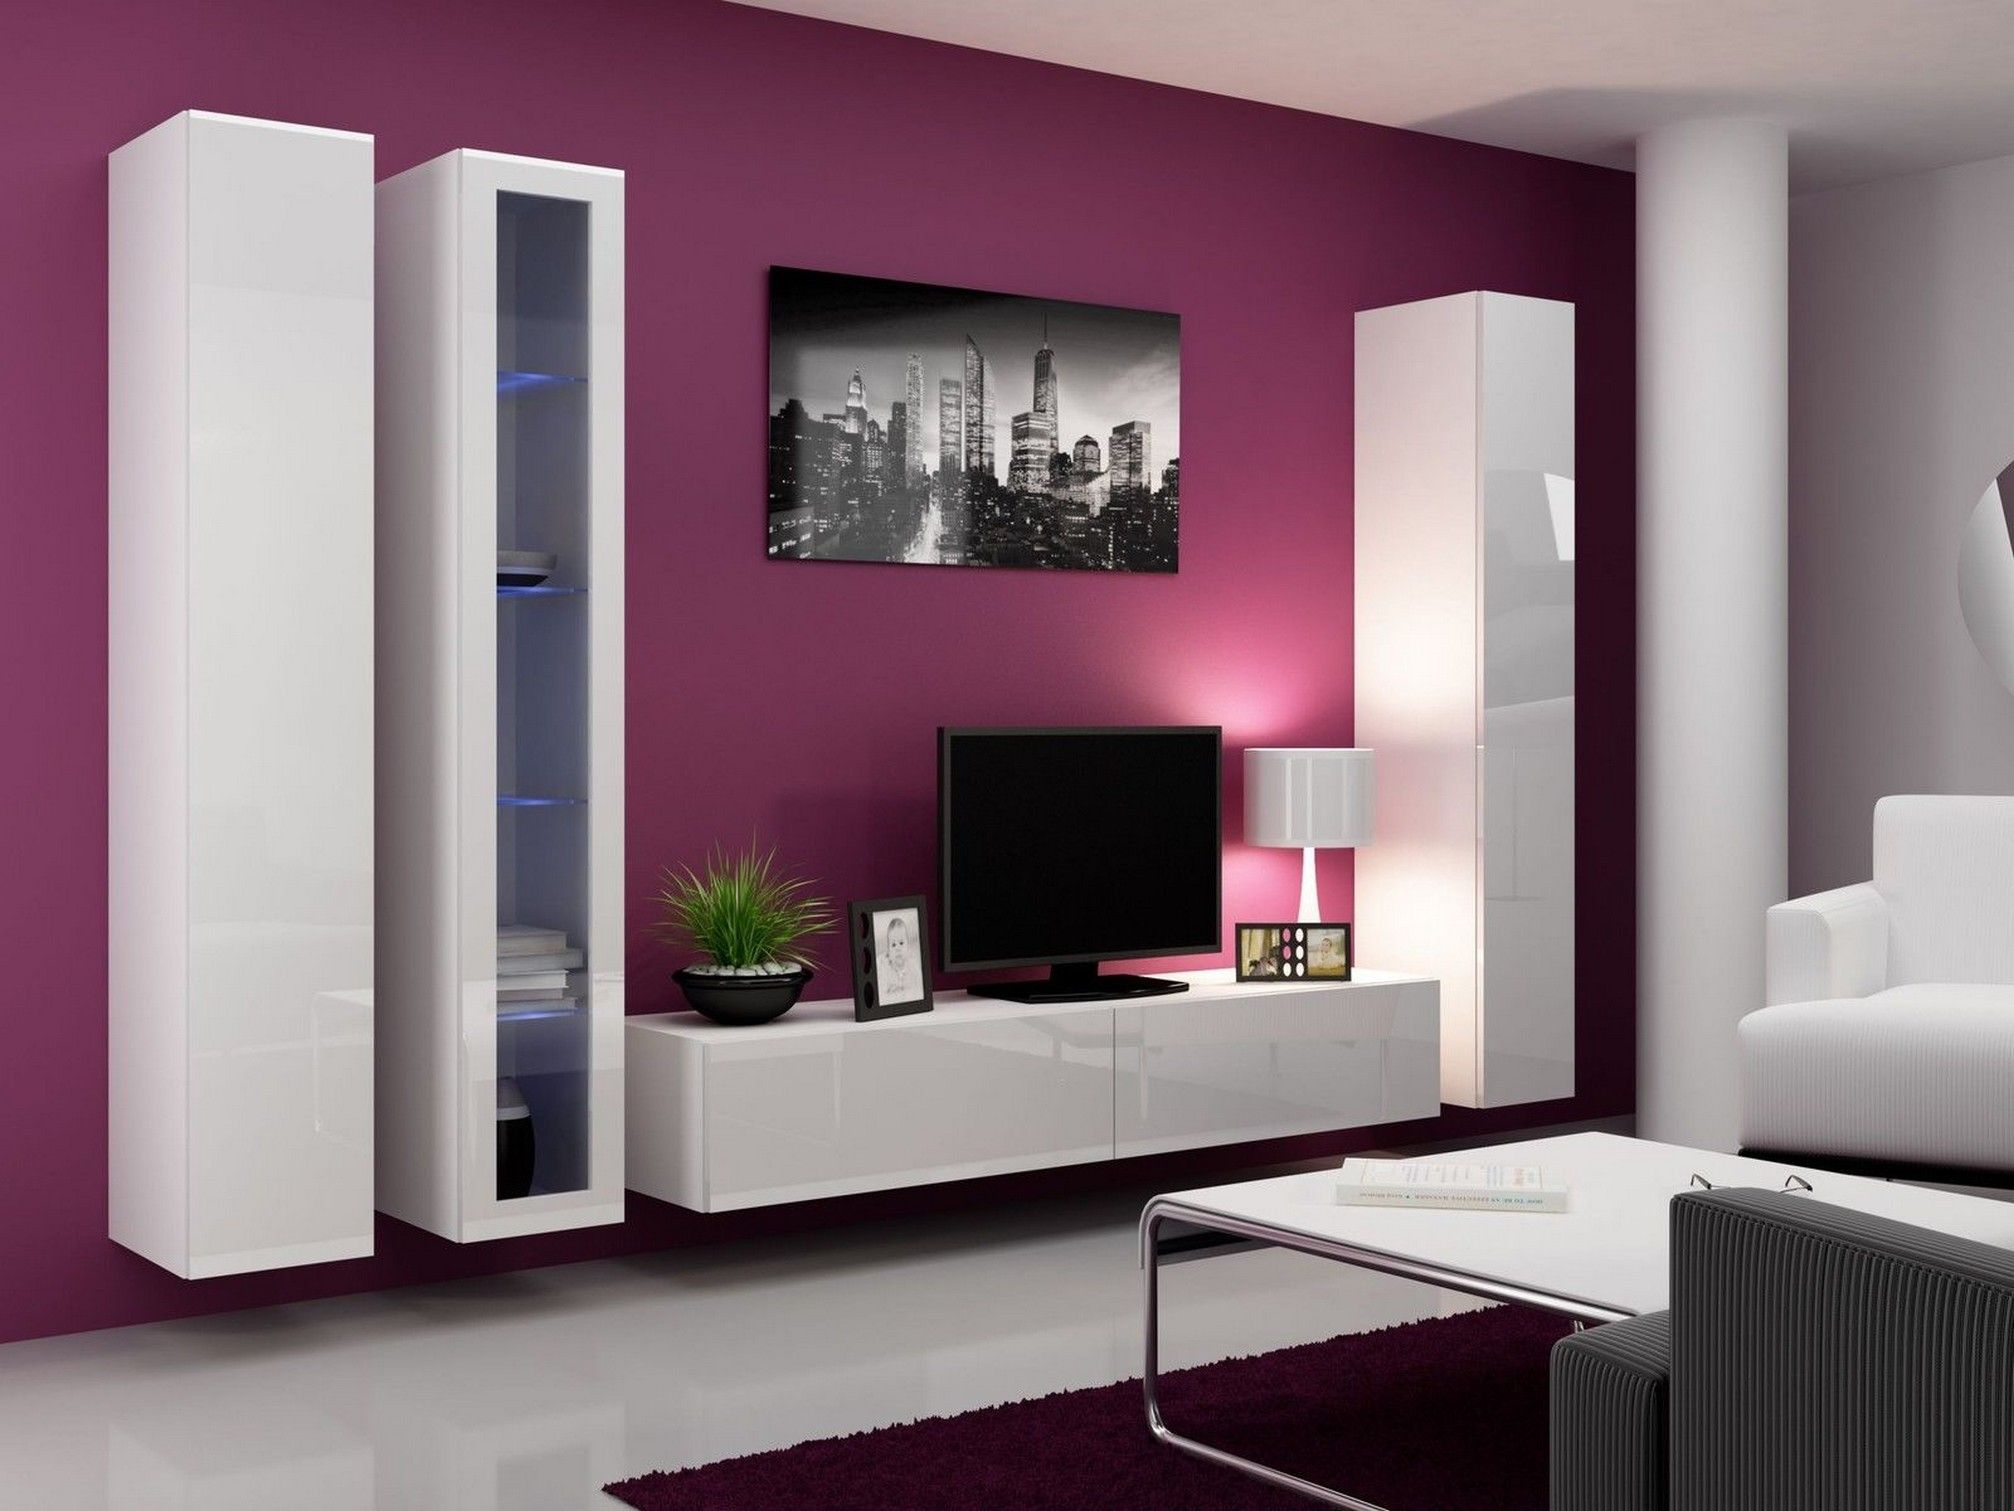 furniture interior white floating tv stands with media shelving attached violet wall color wall mounted tv shelves laltraguida